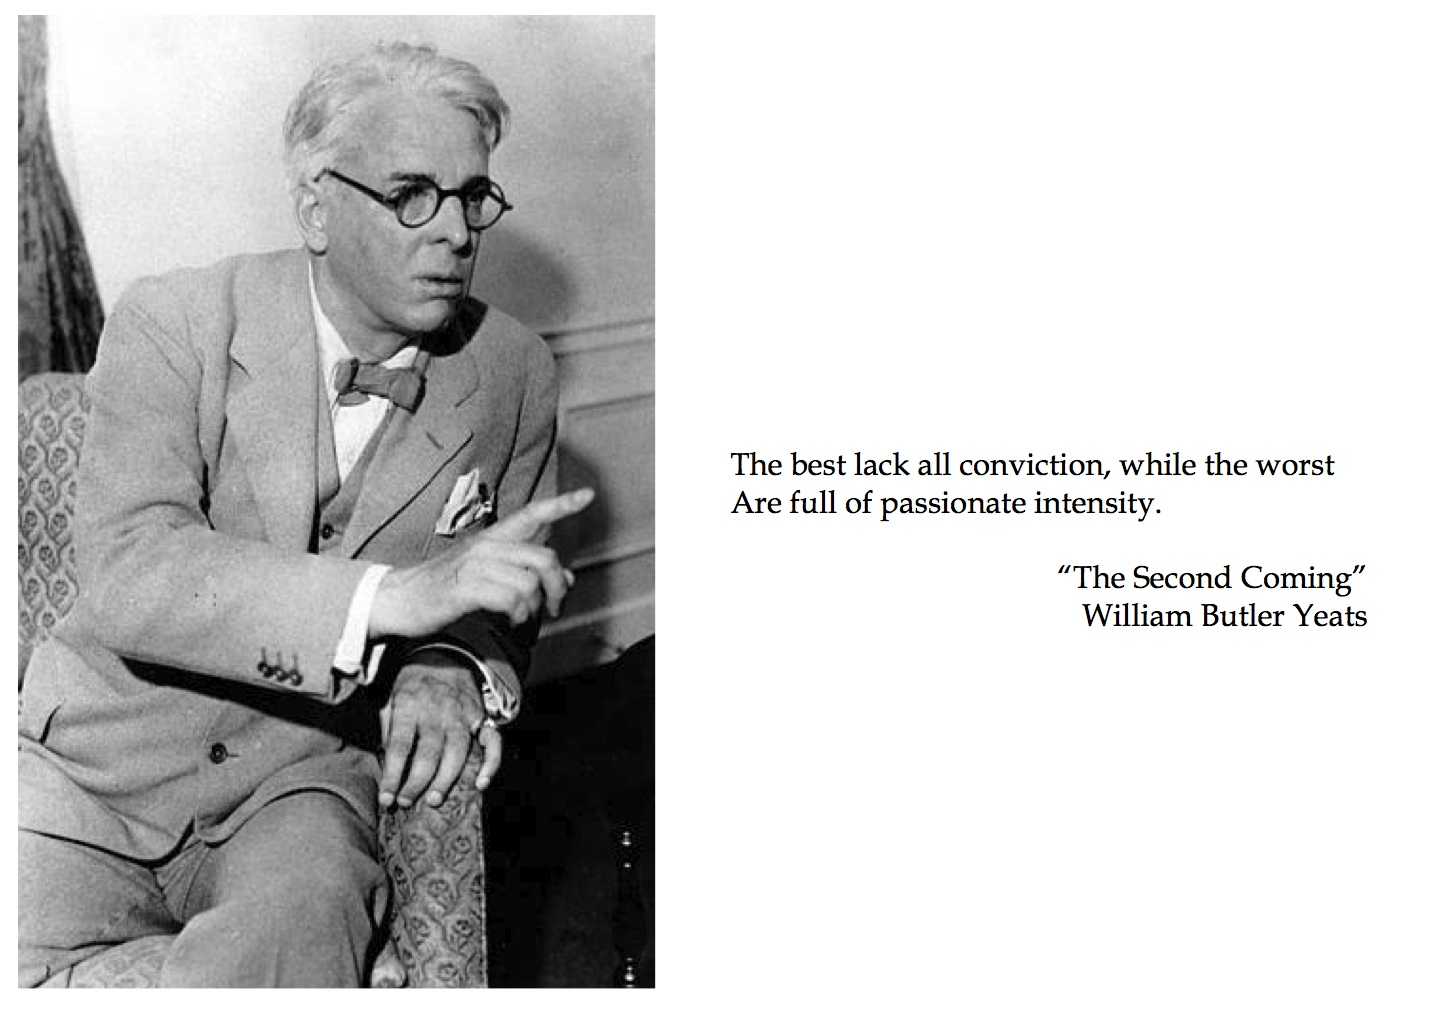 a literary analysis of the second coming by william butler yeats Poetry research essay analysis the second coming by william butler yeats, 1922 mr yeats relates his vision, either real or imagined, concerning prophesies of the days of the second coming.